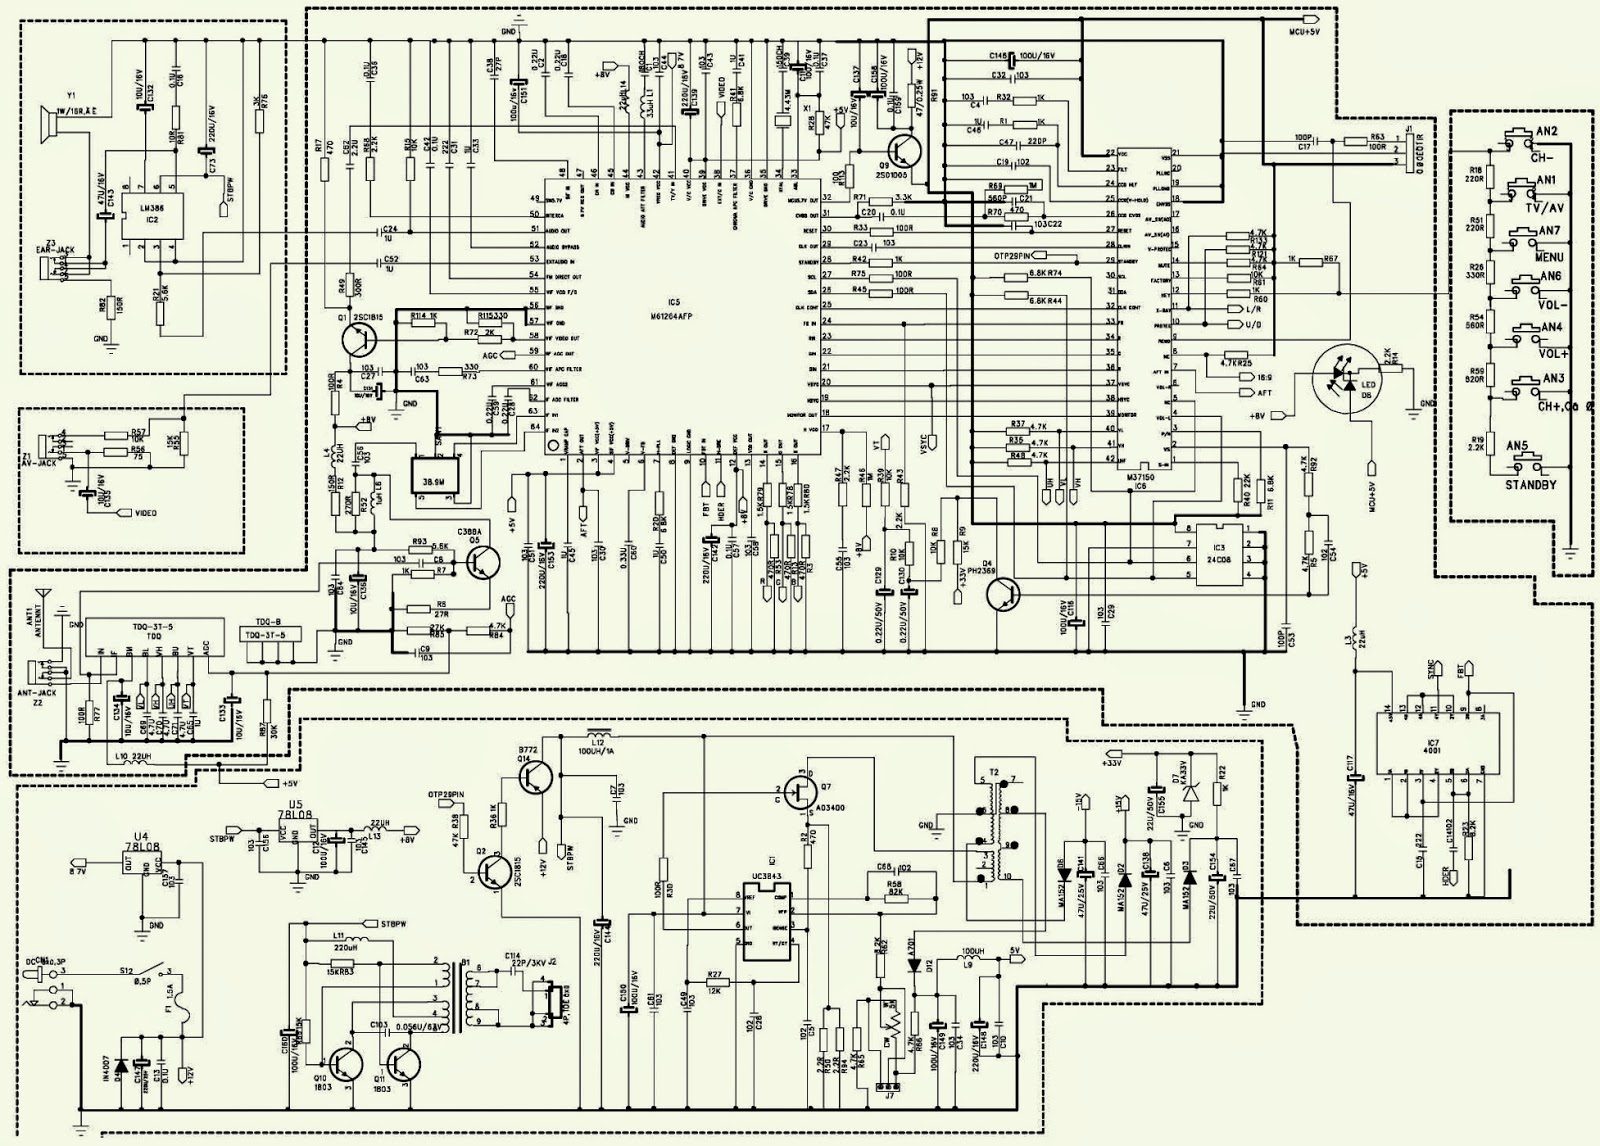 medium resolution of 7 inch tft circuit diagram wiring diagram viewhyundai tv 800 7 inch tft lcd tv schematic